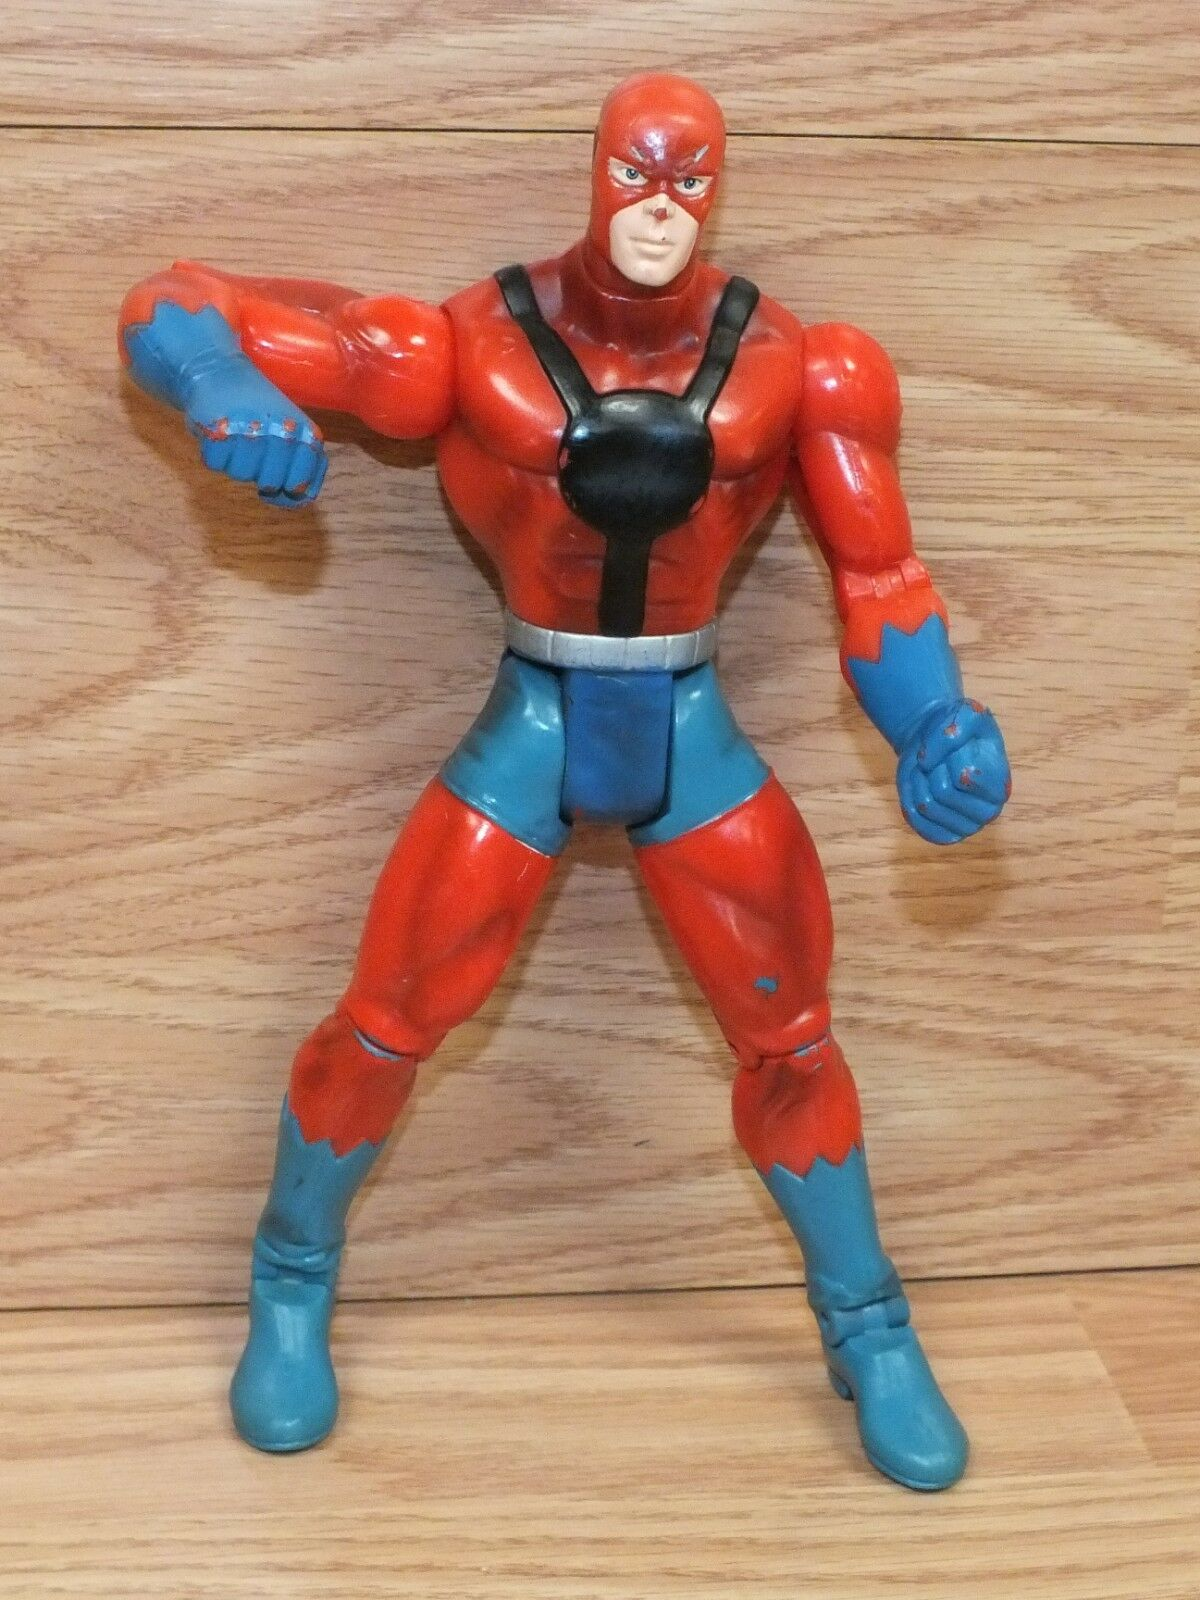 Genuine Marvel bluee & Red Collectible Ant-Man Action Figure   Toy Only READ